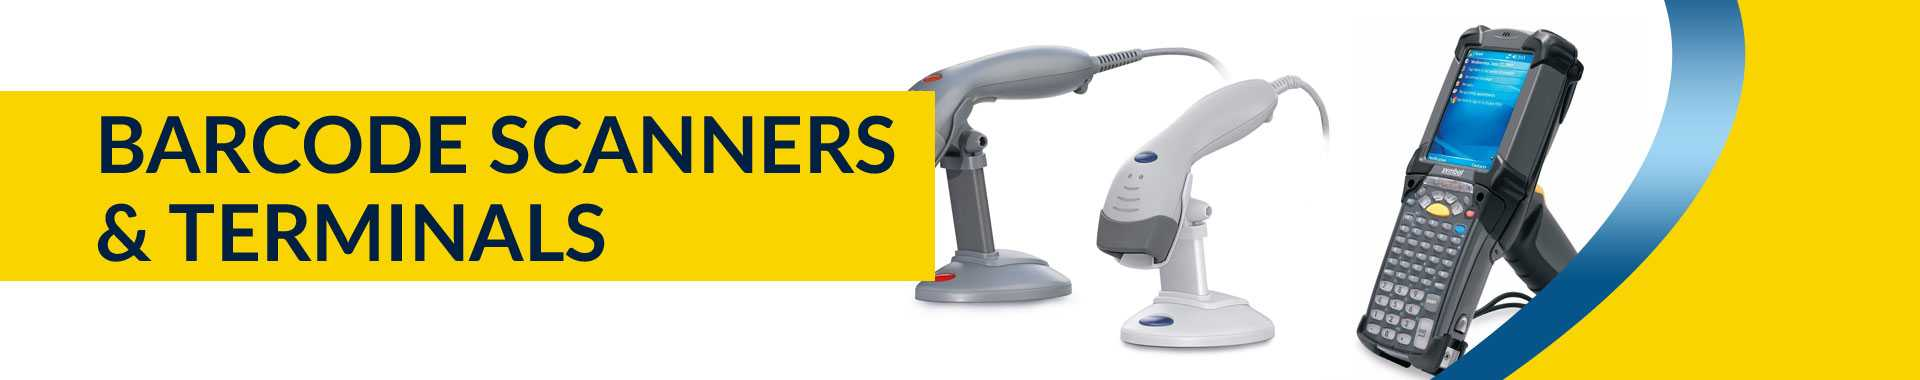 Industrial, Rugged & Handheld Barcode Scanners | Adazon